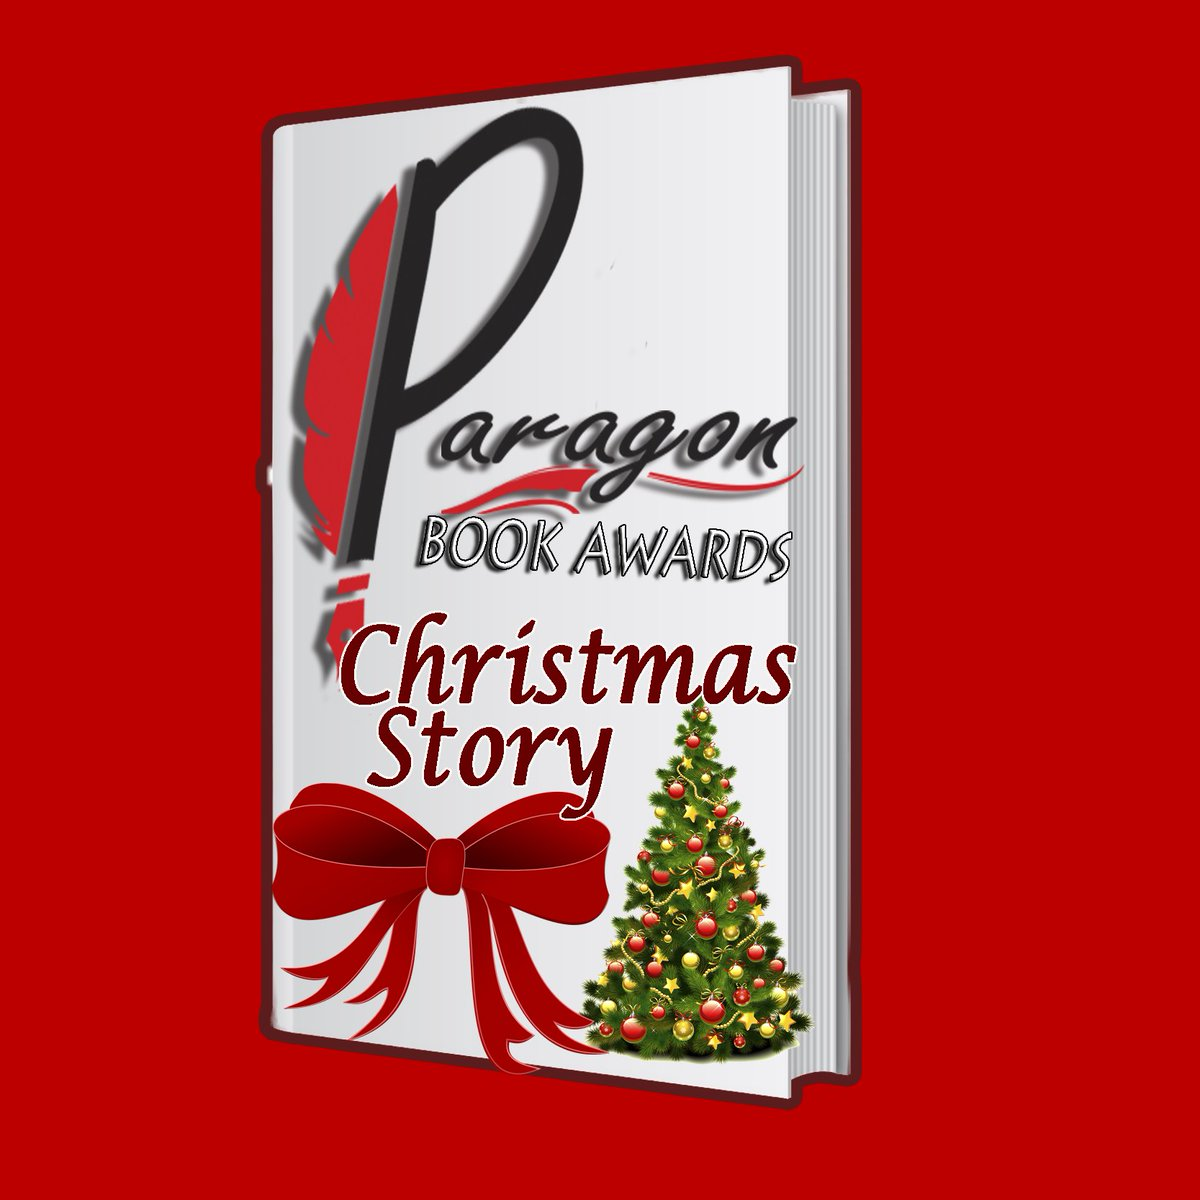 Win 40+reviews  Enter your #Christmas Story now. All genres welcome. #Author service prizes  http://www. ParagonBookAwards.com  &nbsp;  .<br>http://pic.twitter.com/3ngc3pIDuP